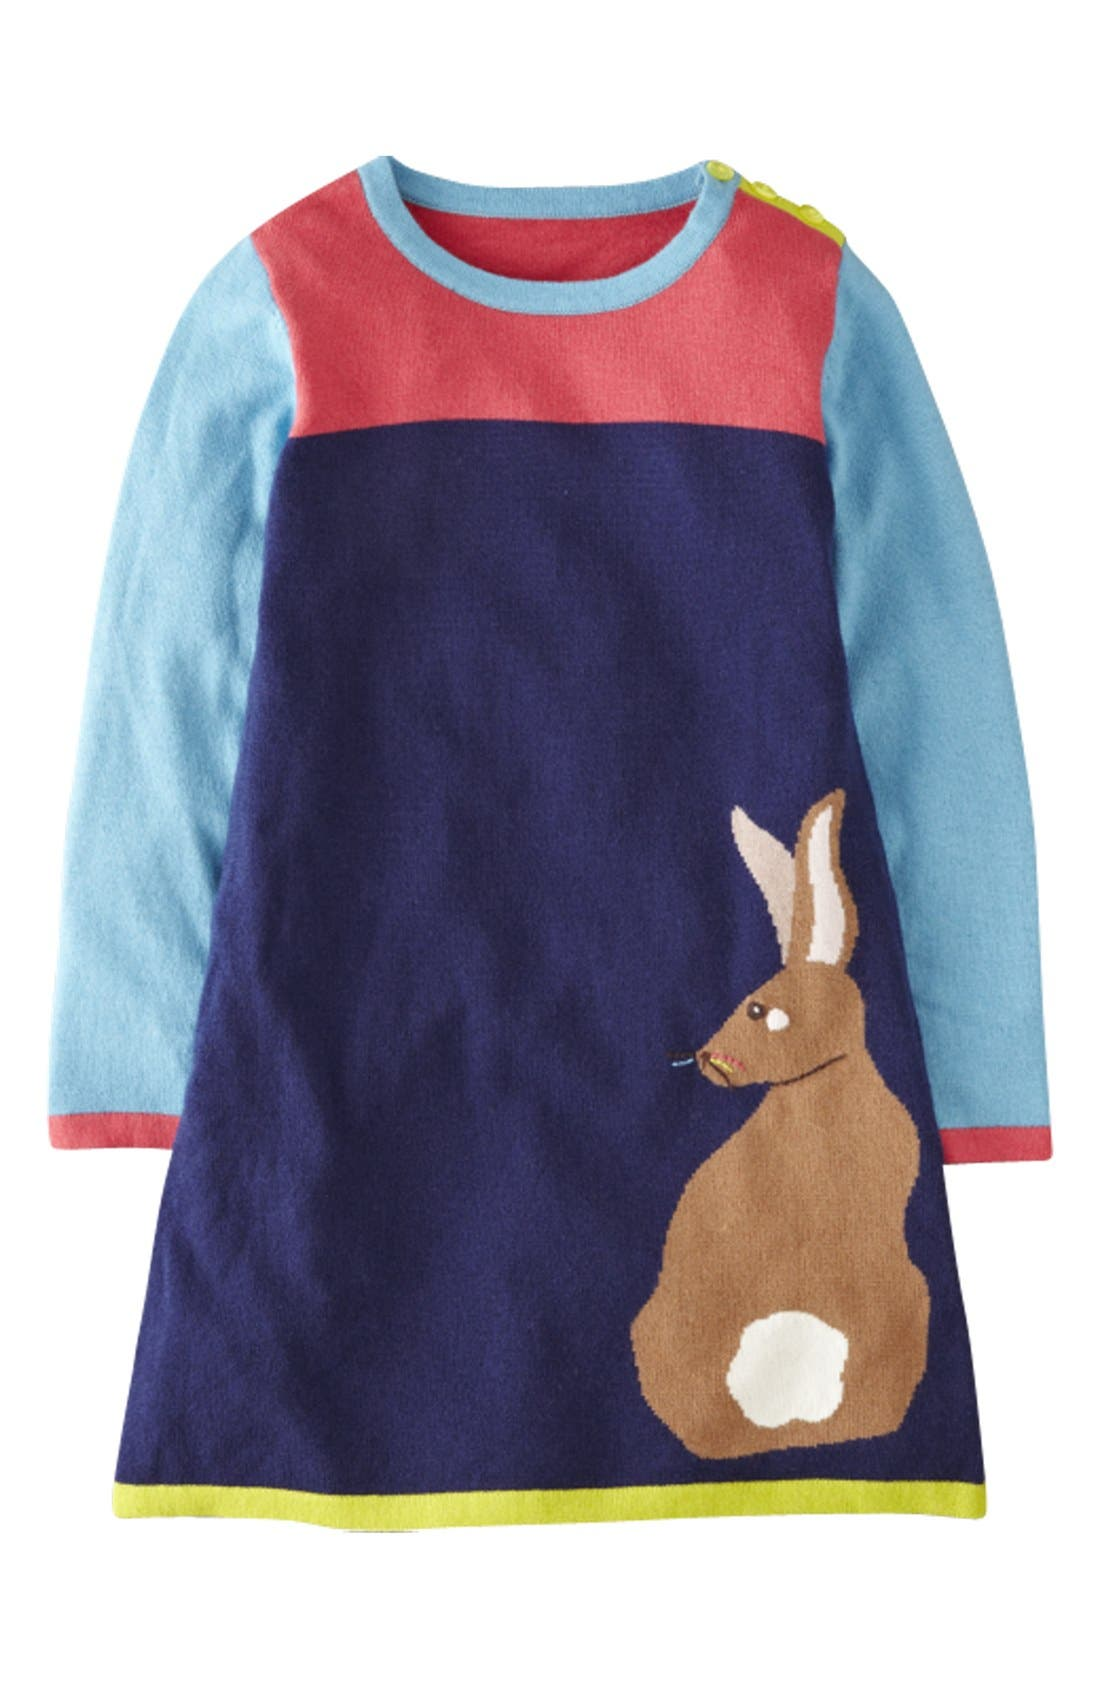 Main Image - Mini Boden 'Woodland' Knit Dress (Toddler Girls)